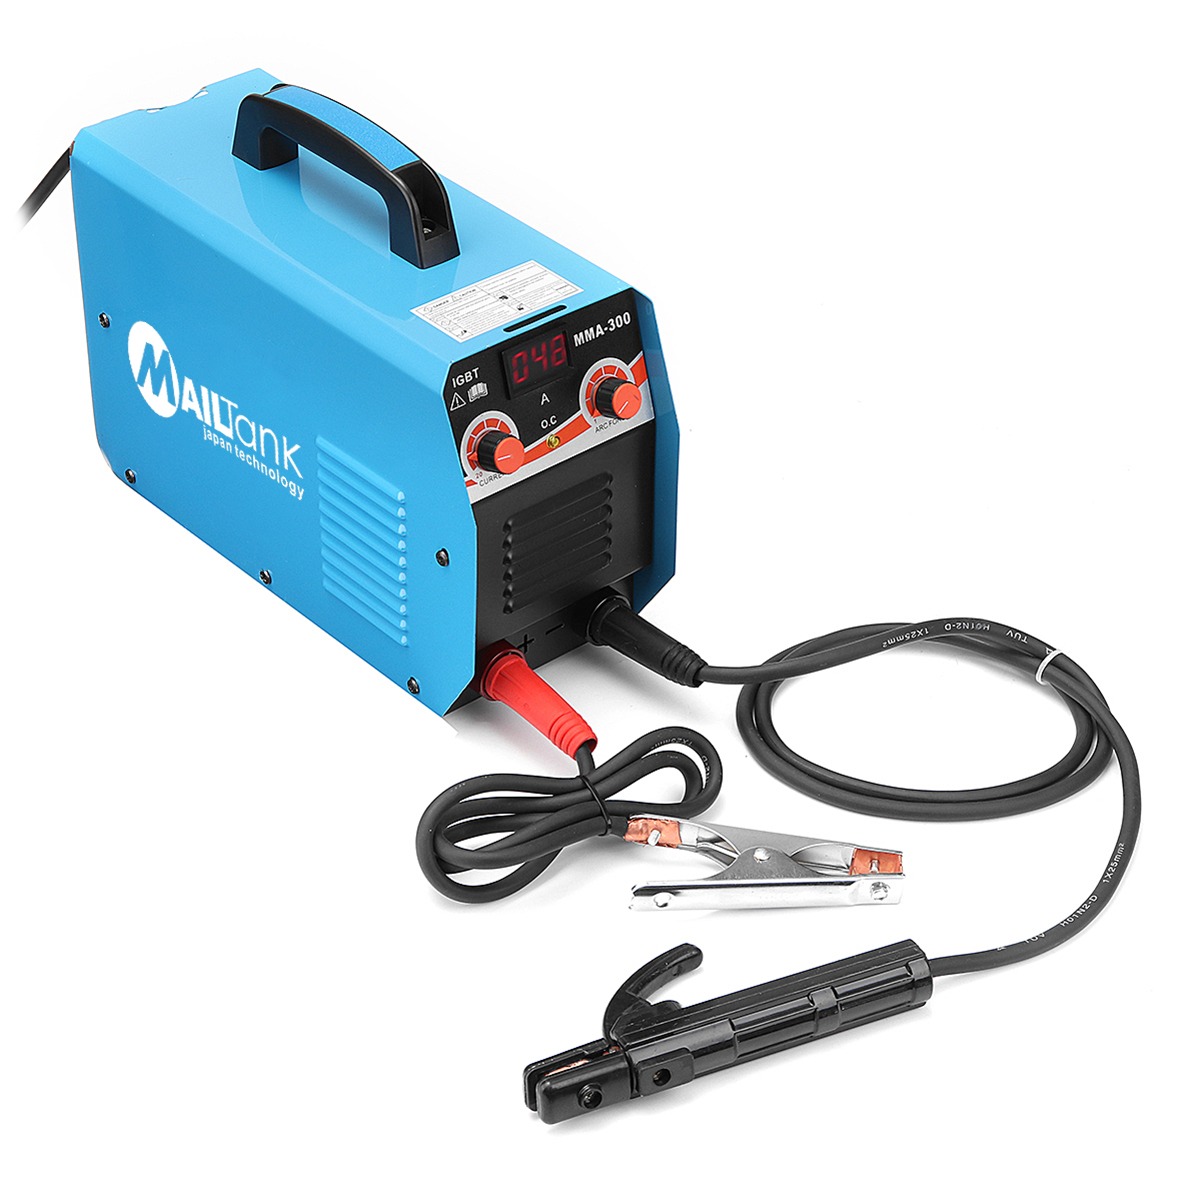 Welding 220V semiautomatic device: technical characteristics, reviews of manufacturers 58